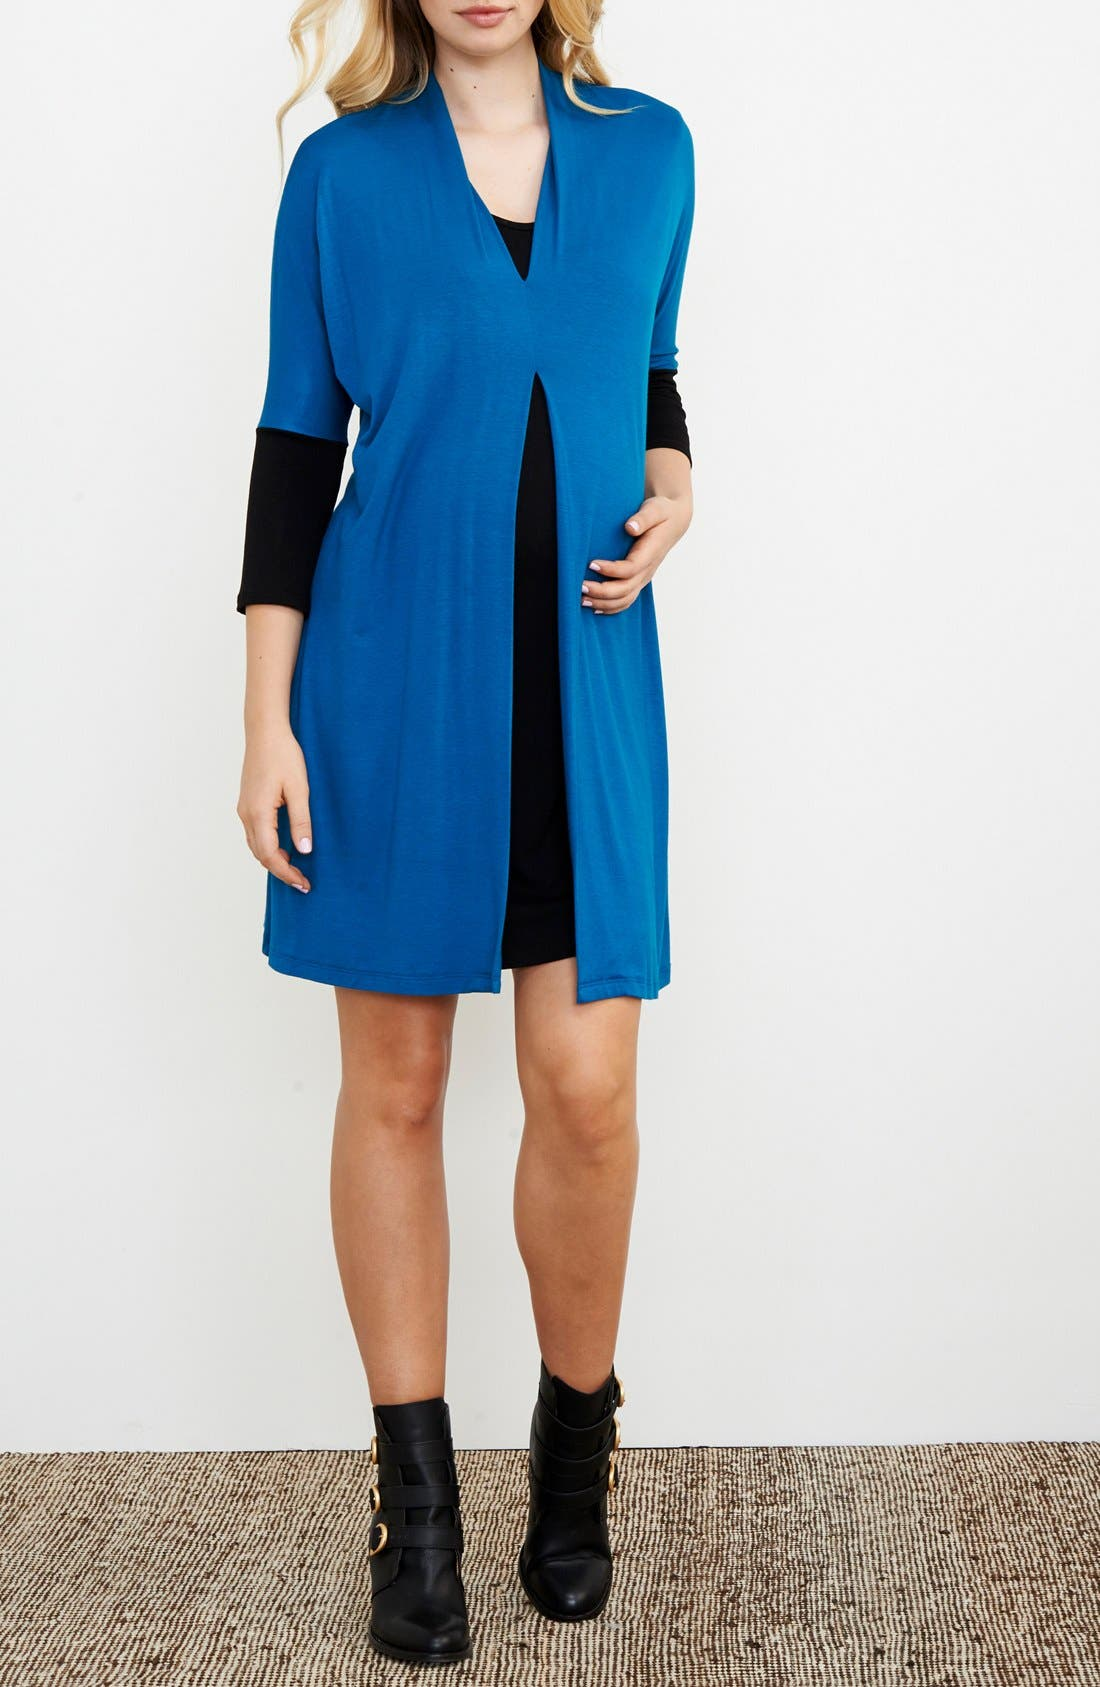 Layered Maternity/Nursing Dress,                         Main,                         color, Teal/ Black